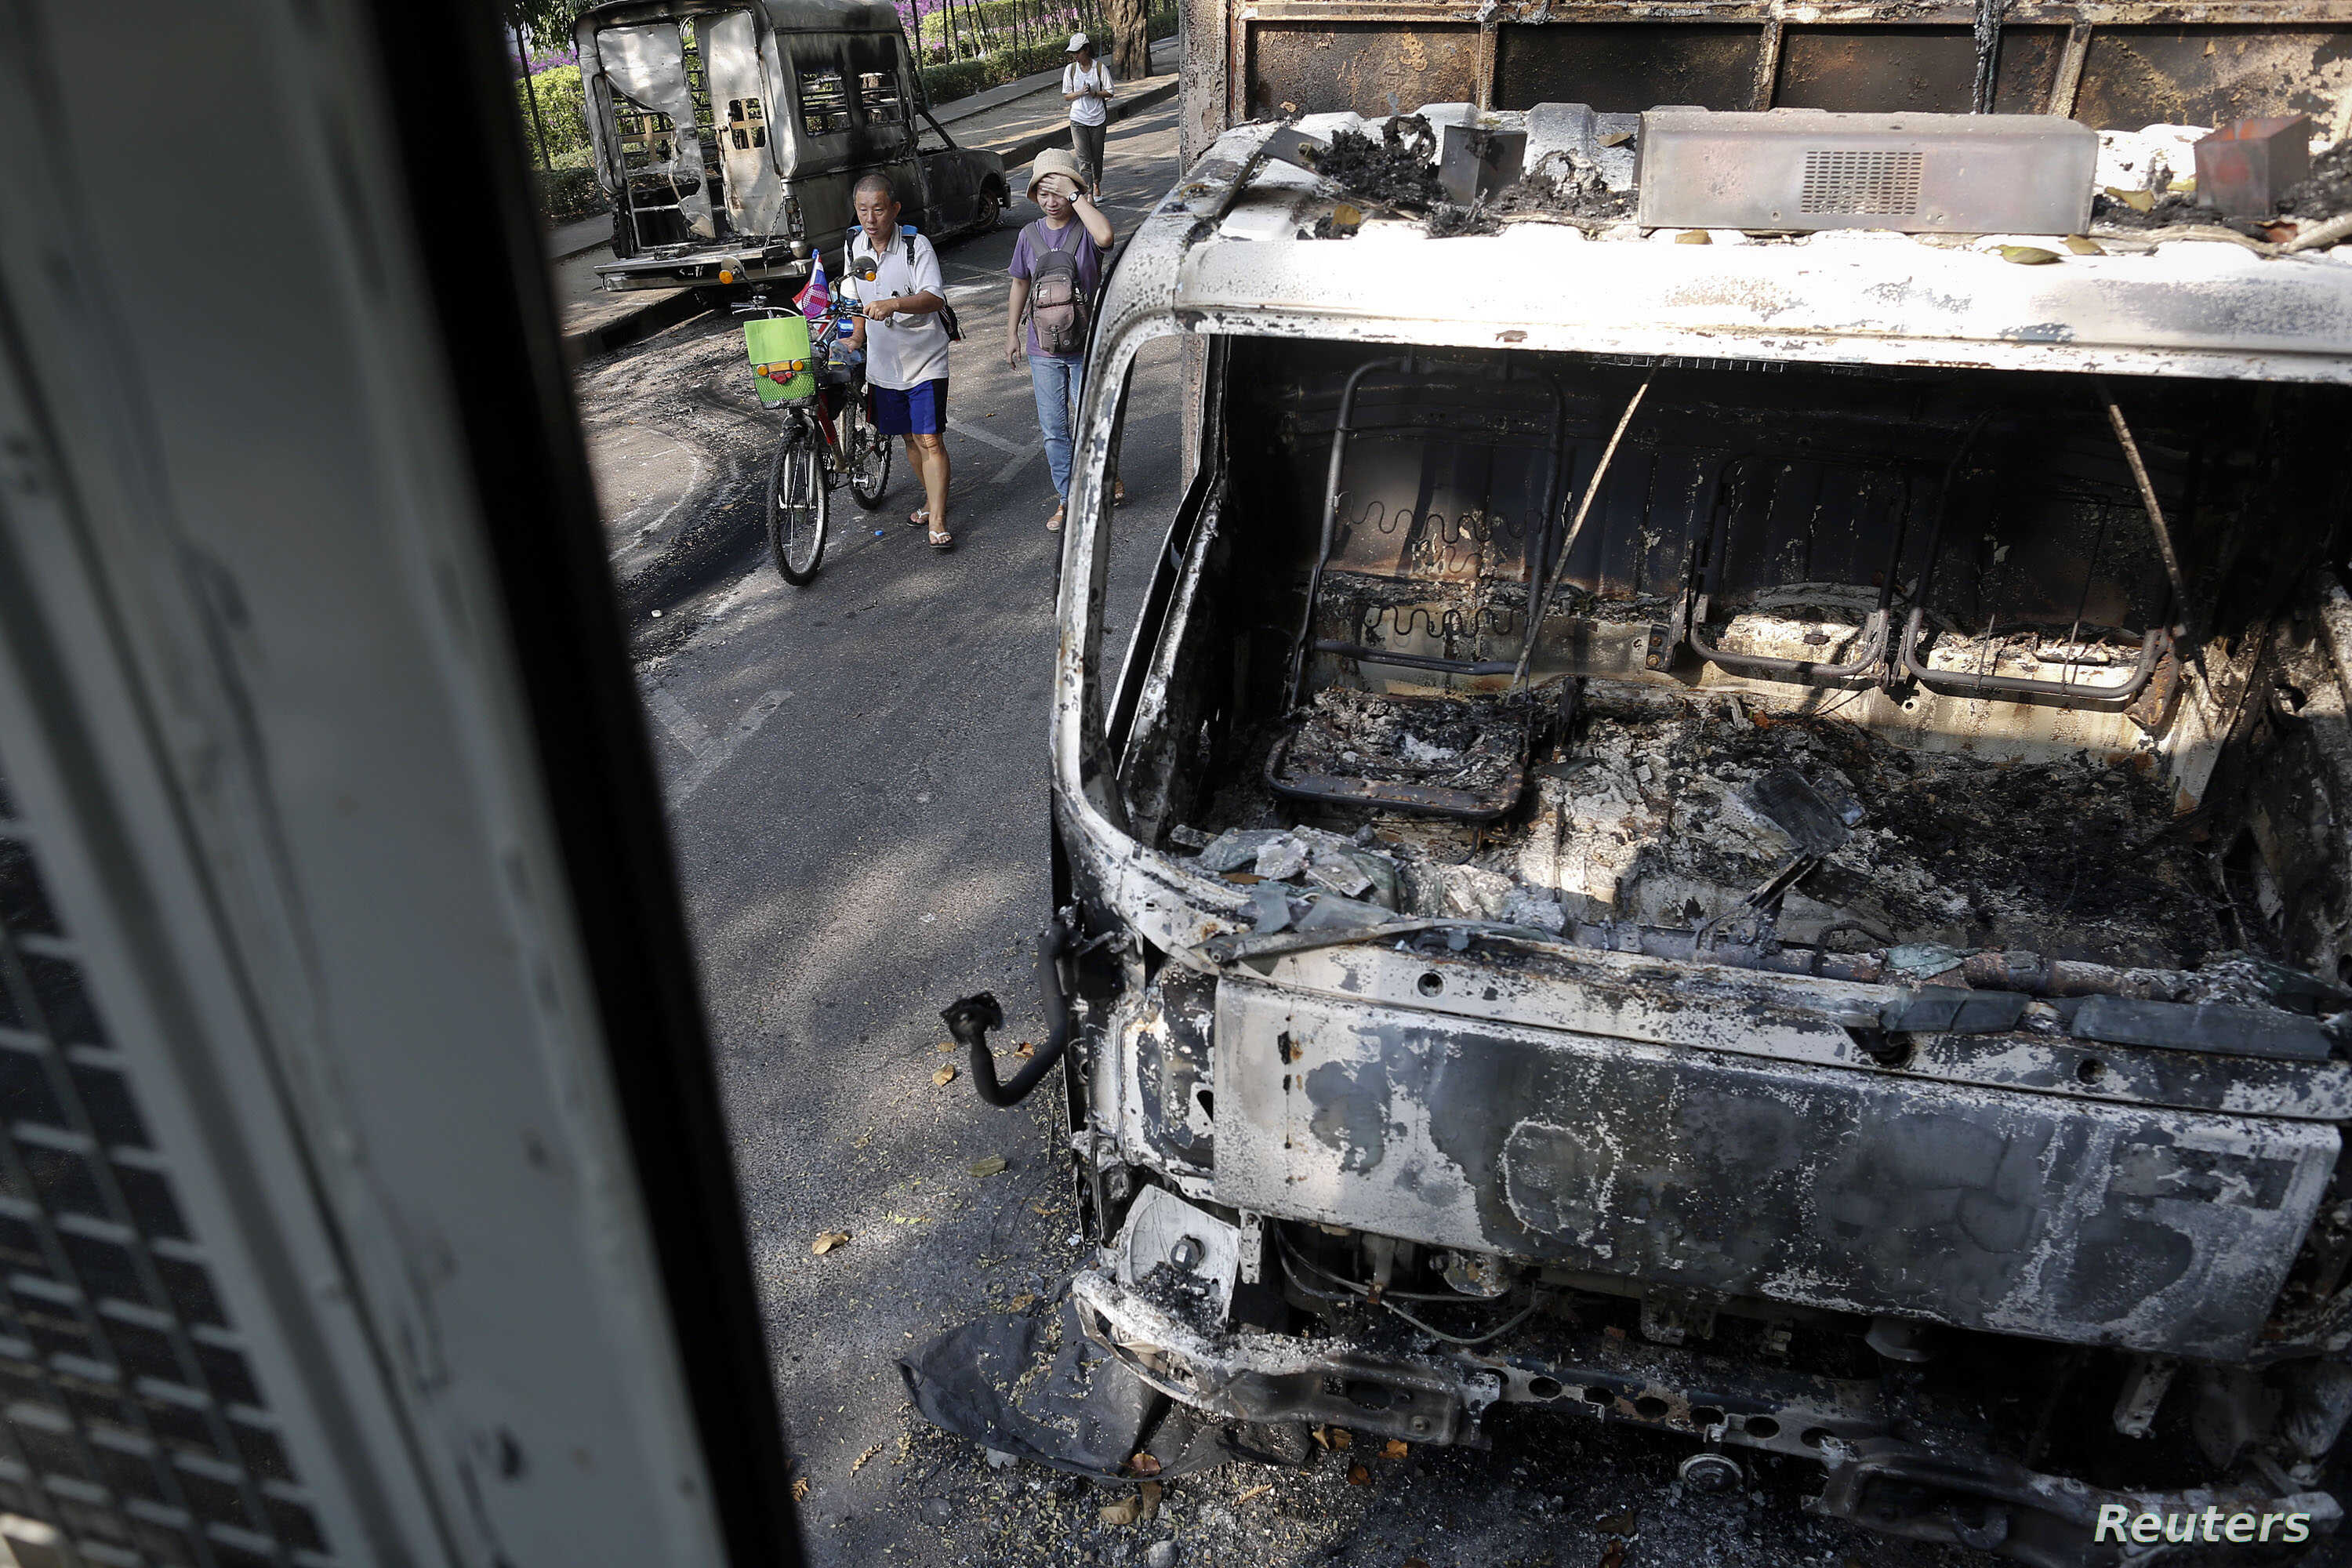 People walk between burnt-out vehicles at the site of recent clashes between anti-government protesters and police near the Government house in Bangkok, Thailand, Dec. 7, 2013.